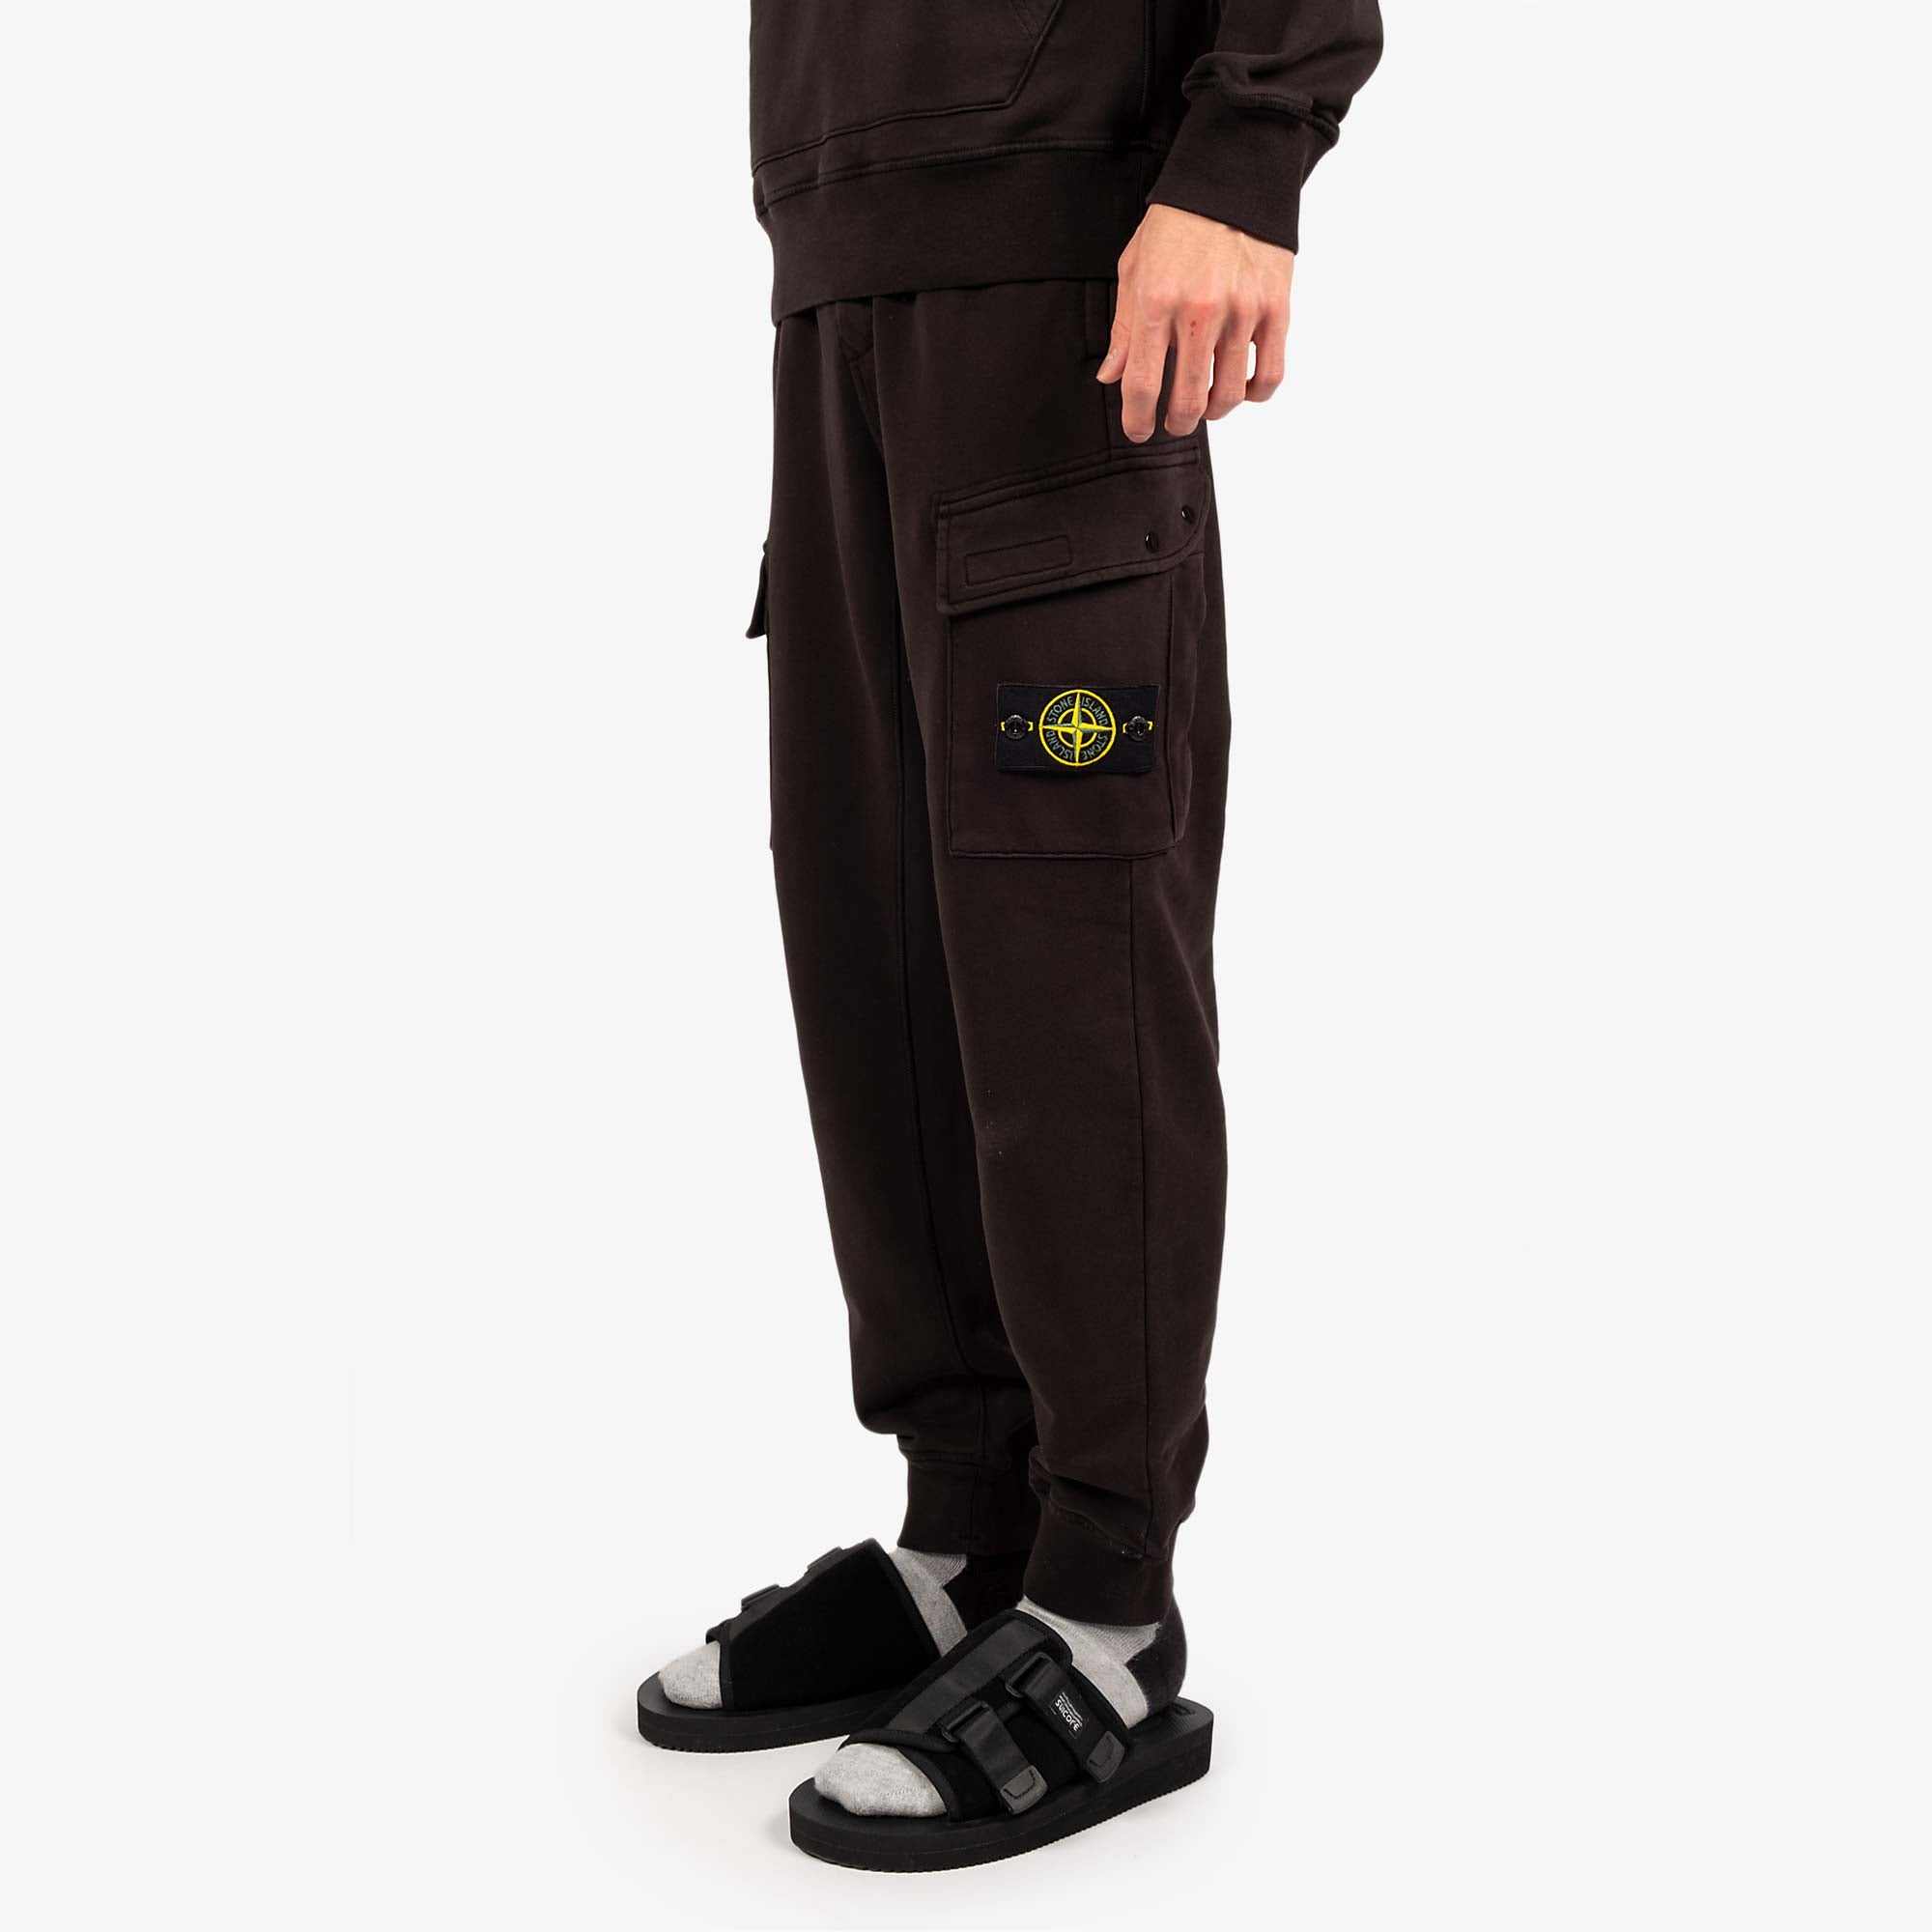 Stone Island Fleece Pants 741565251 - Black 2